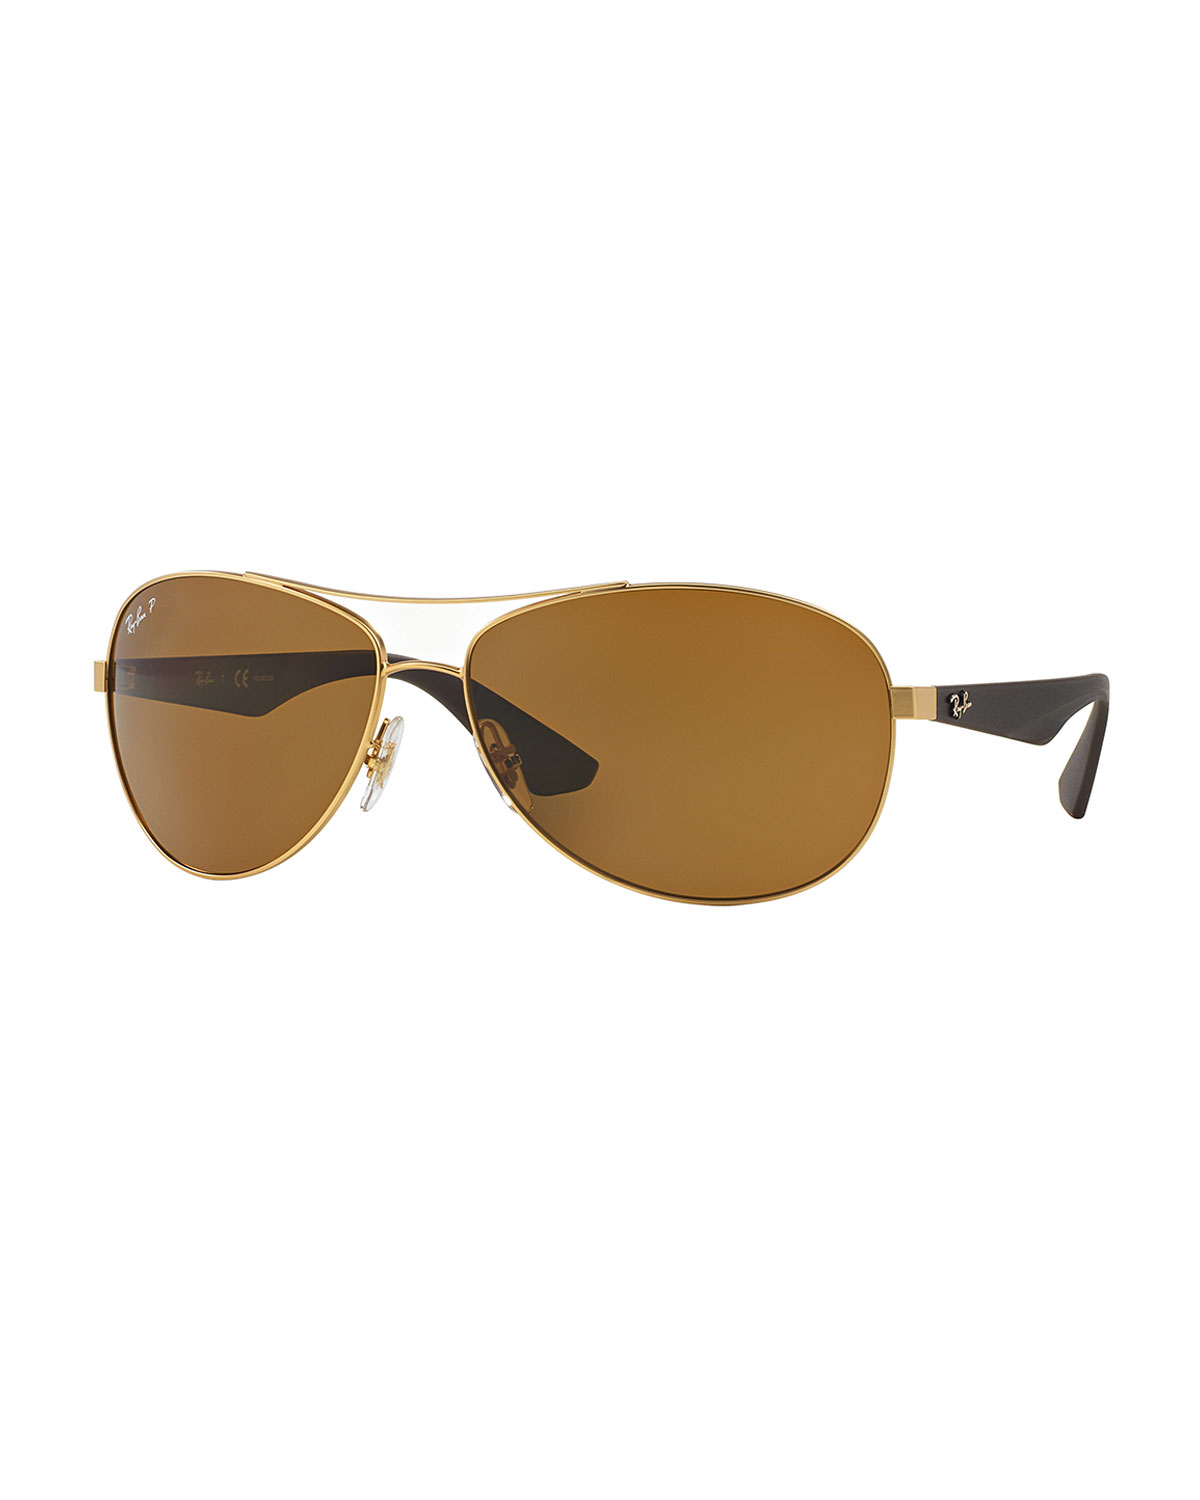 Ray-ban Wire-frame Metal Sunglasses in Metallic Lyst